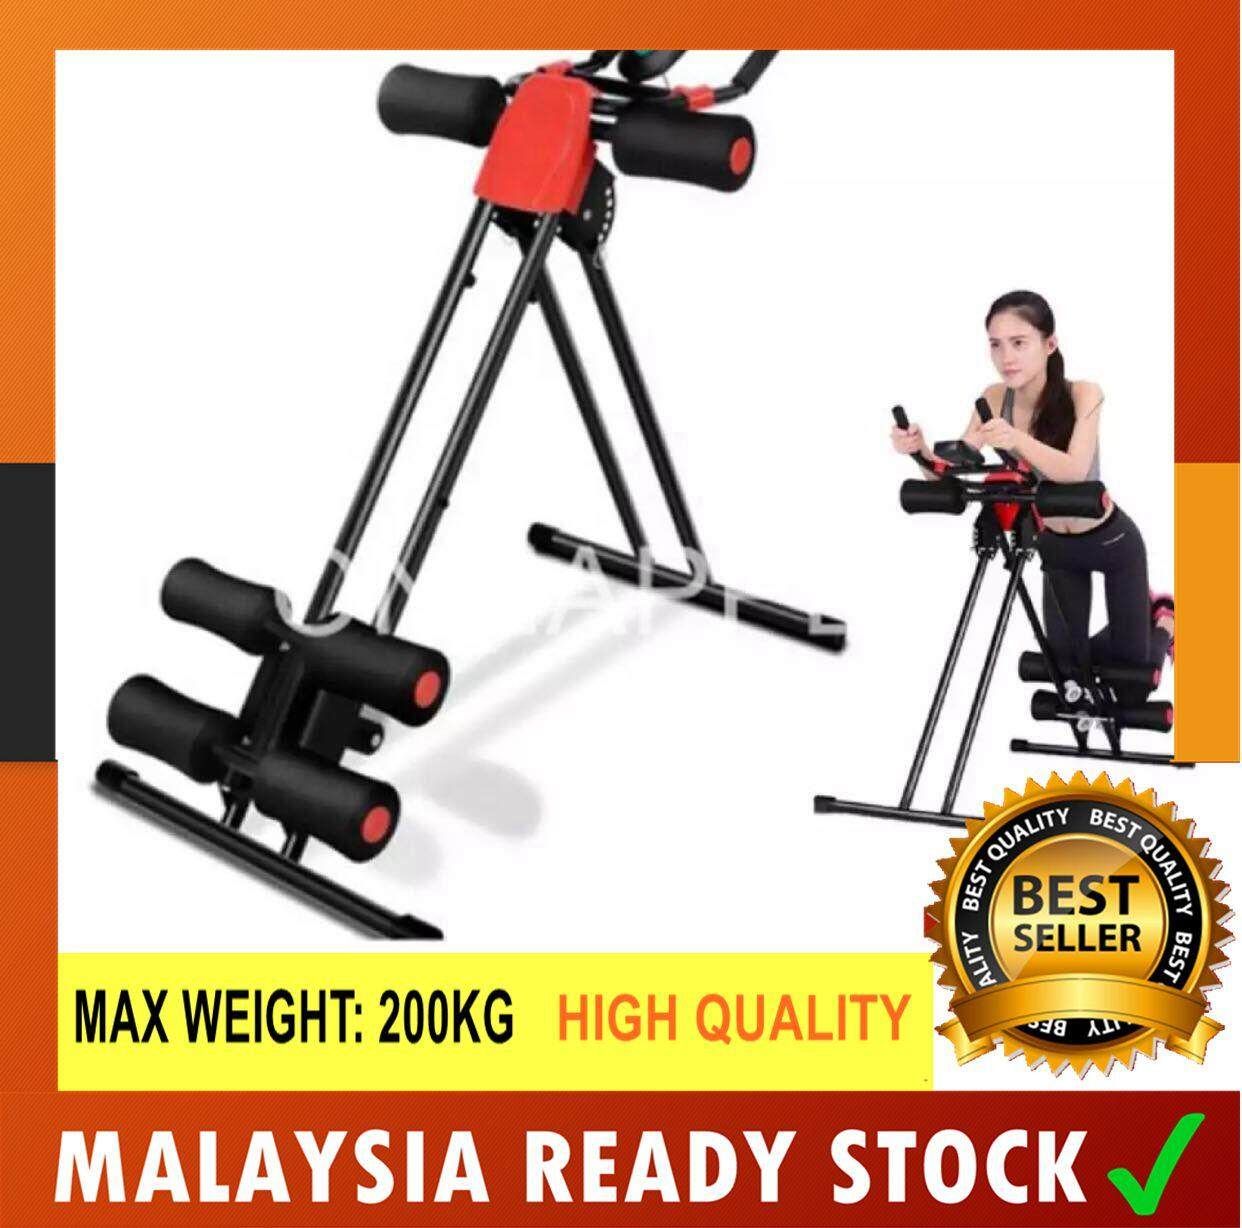 5 Minute Shaper Vertical Abdominal Machine Fitness Equipment for Home Gyms